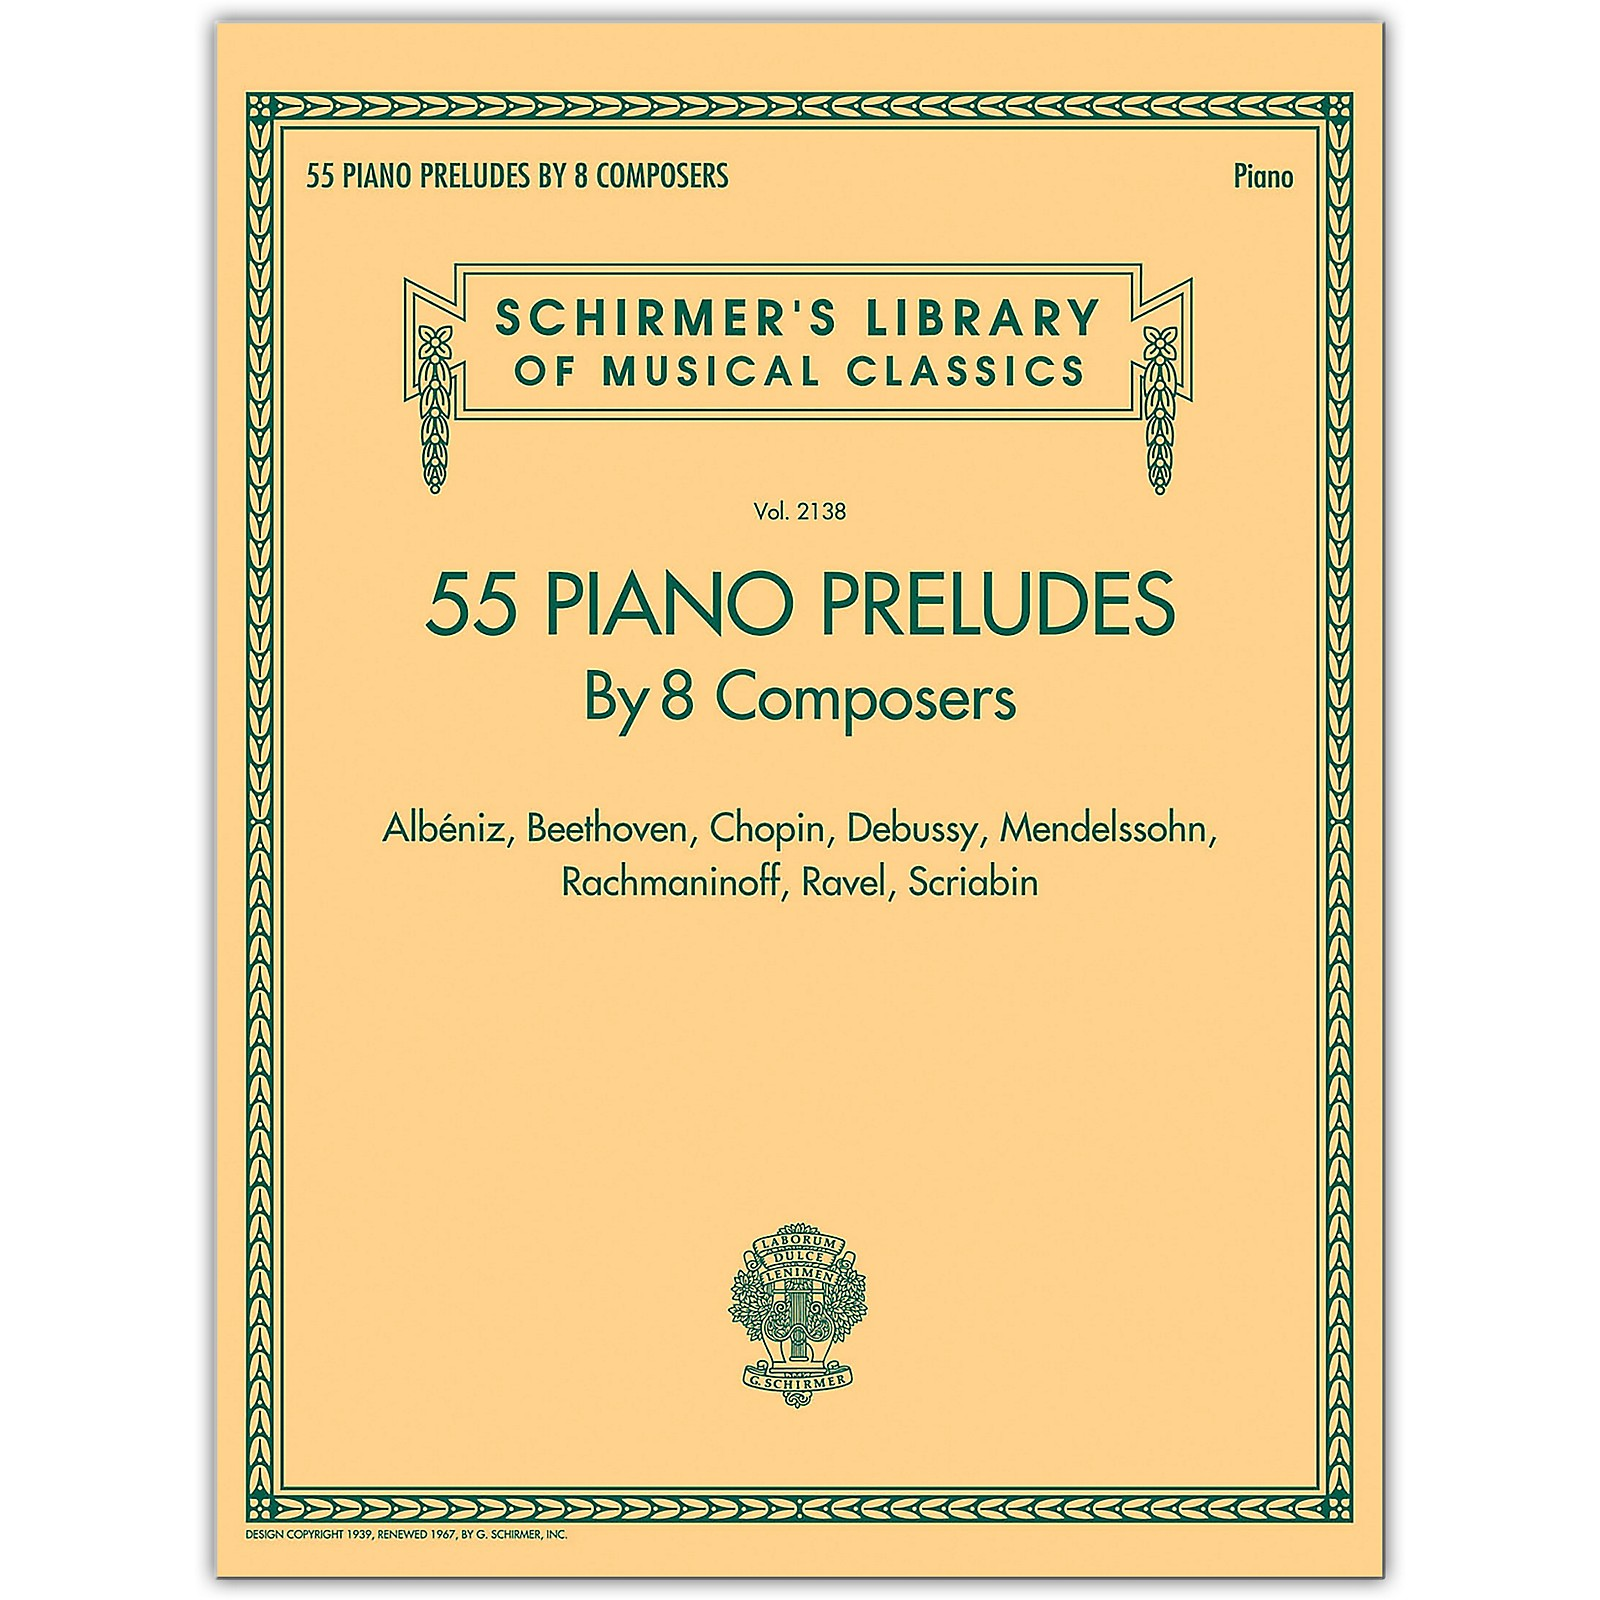 G. Schirmer 55 Piano Preludes By 8 Composers - Schirmer's Library Of Musical Classics